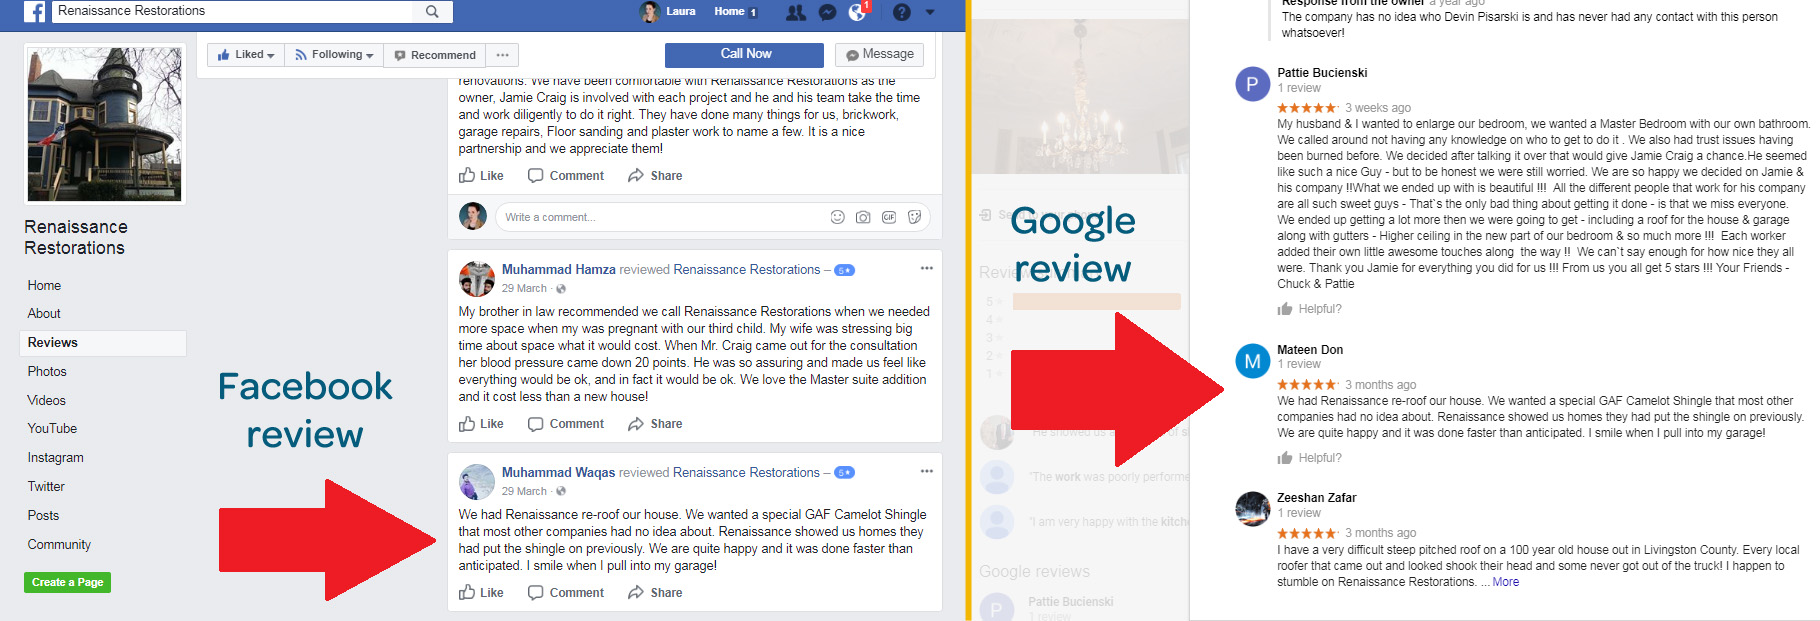 renaissance restoration example of a fake review on google and facebook